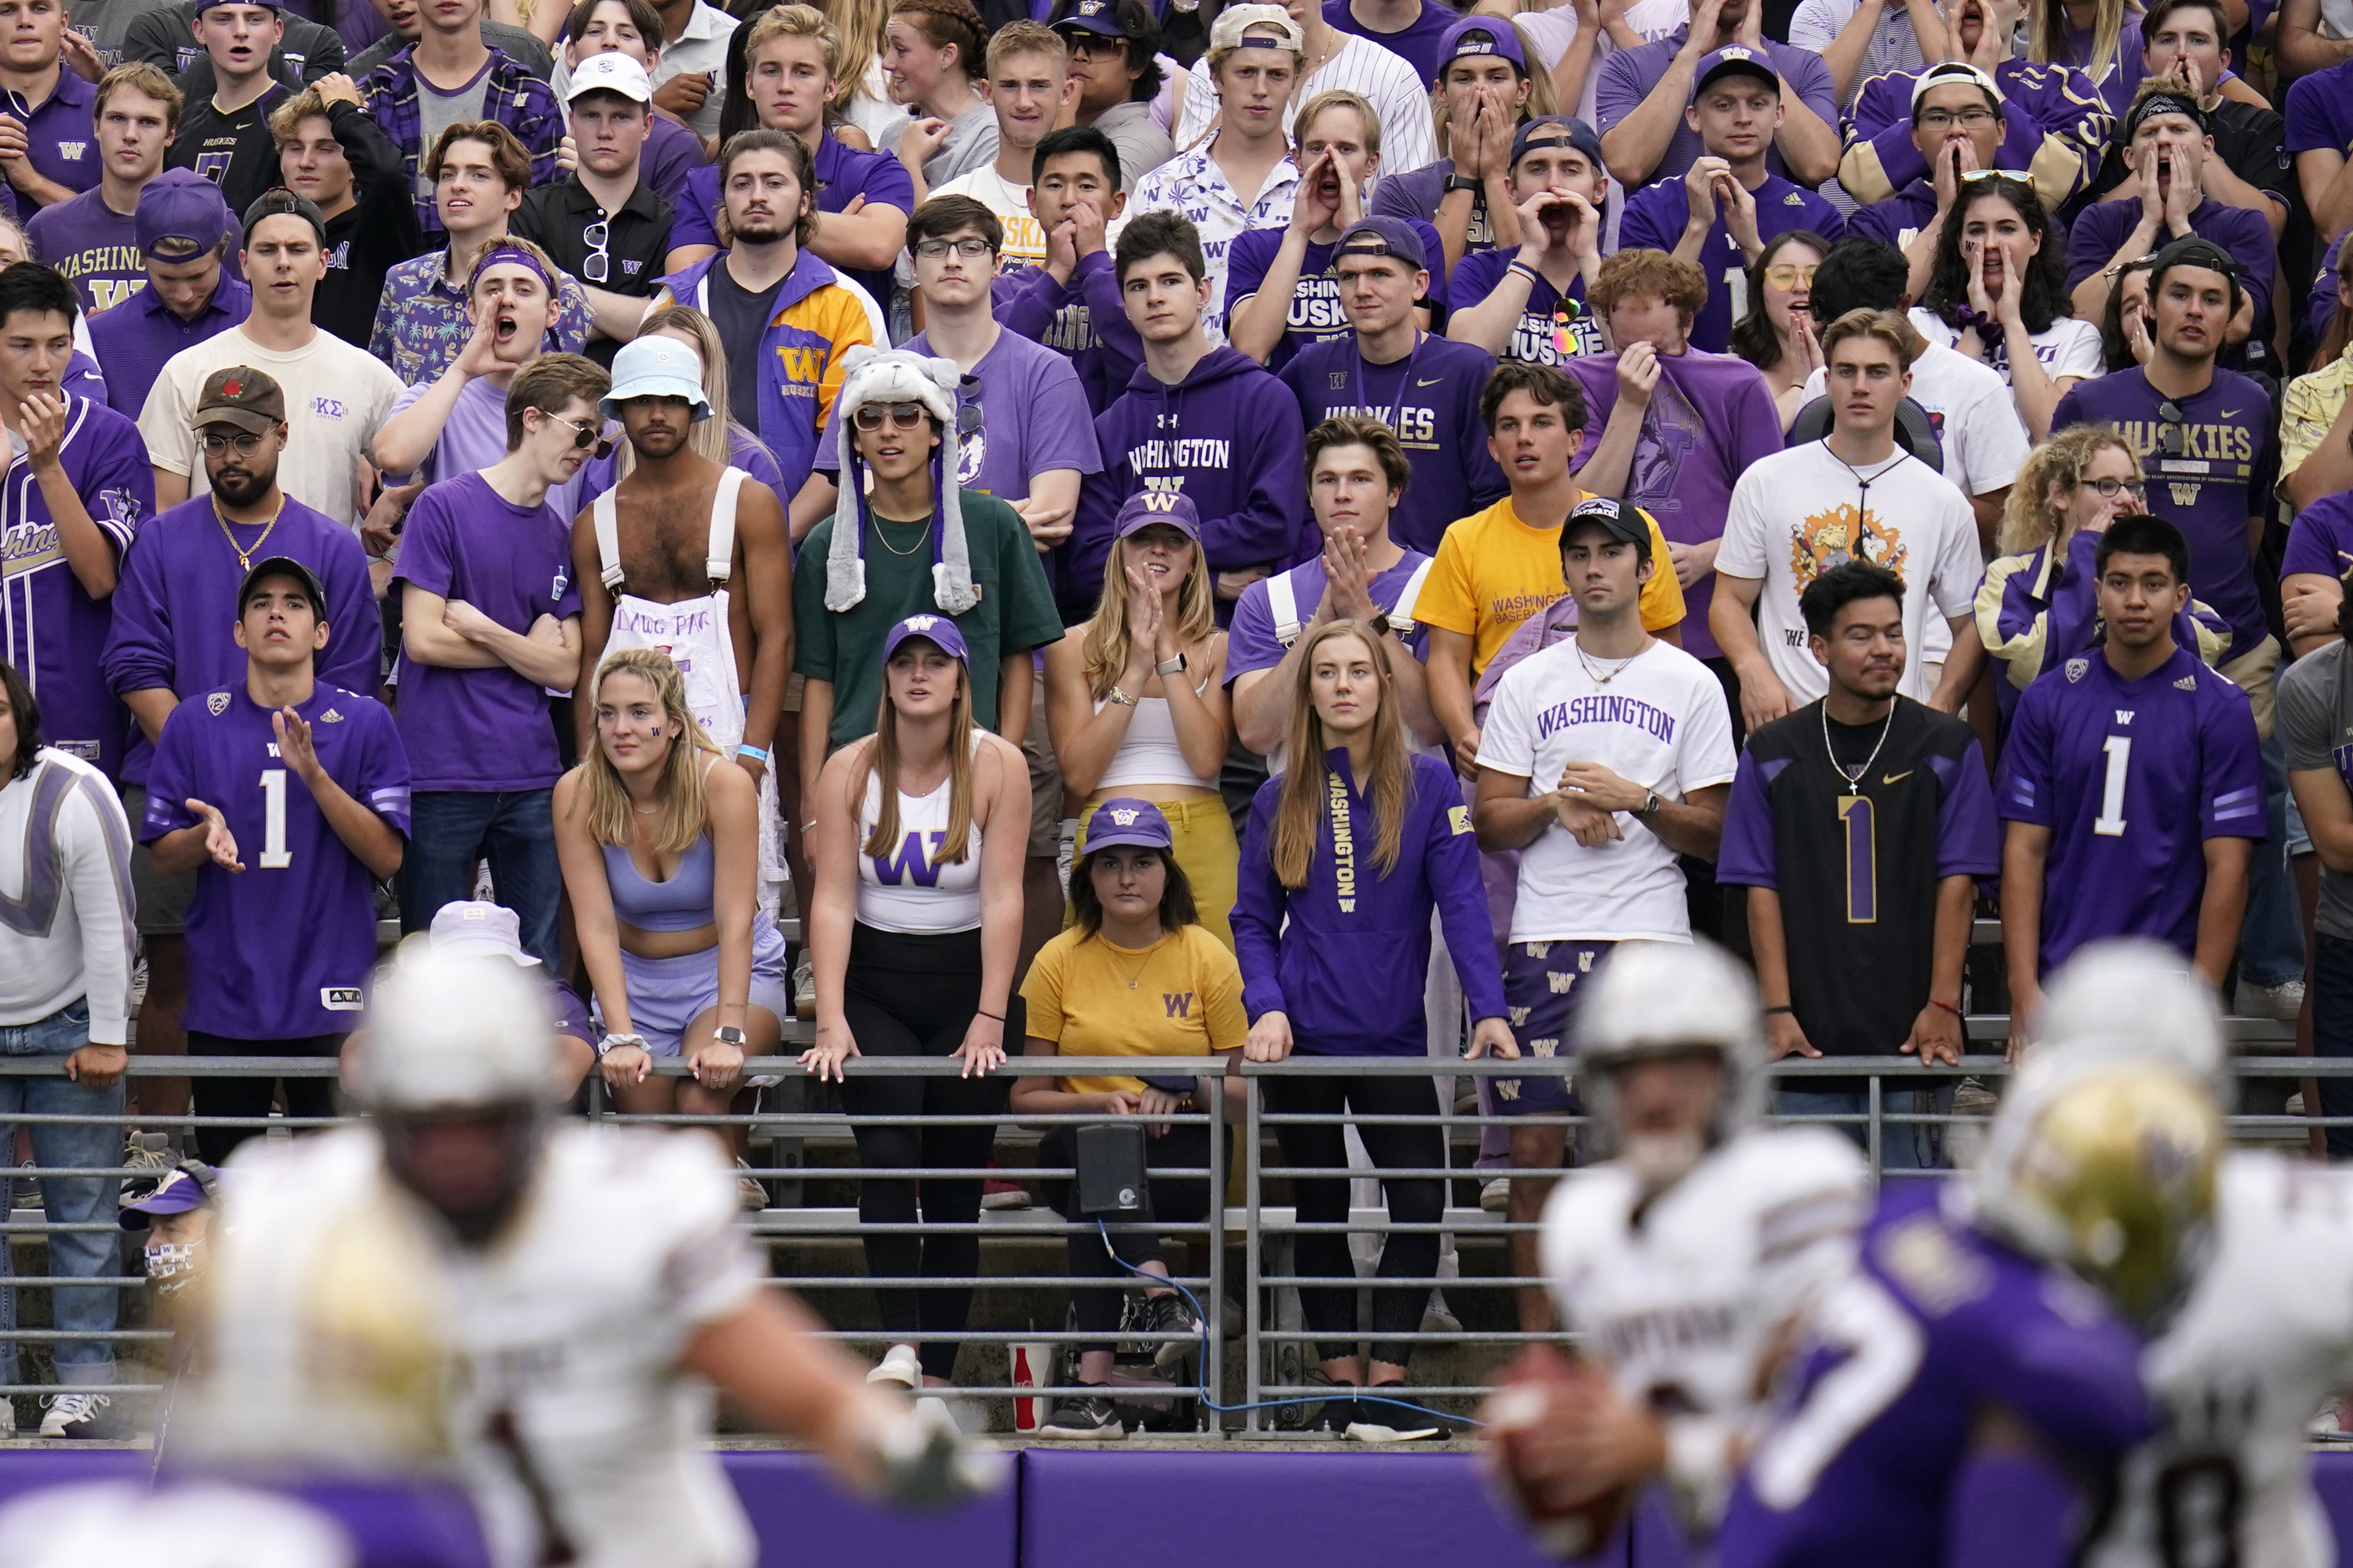 Washington fans look on from the student section during game against Montana Saturday, Sept. 4, 2021, in Seattle.